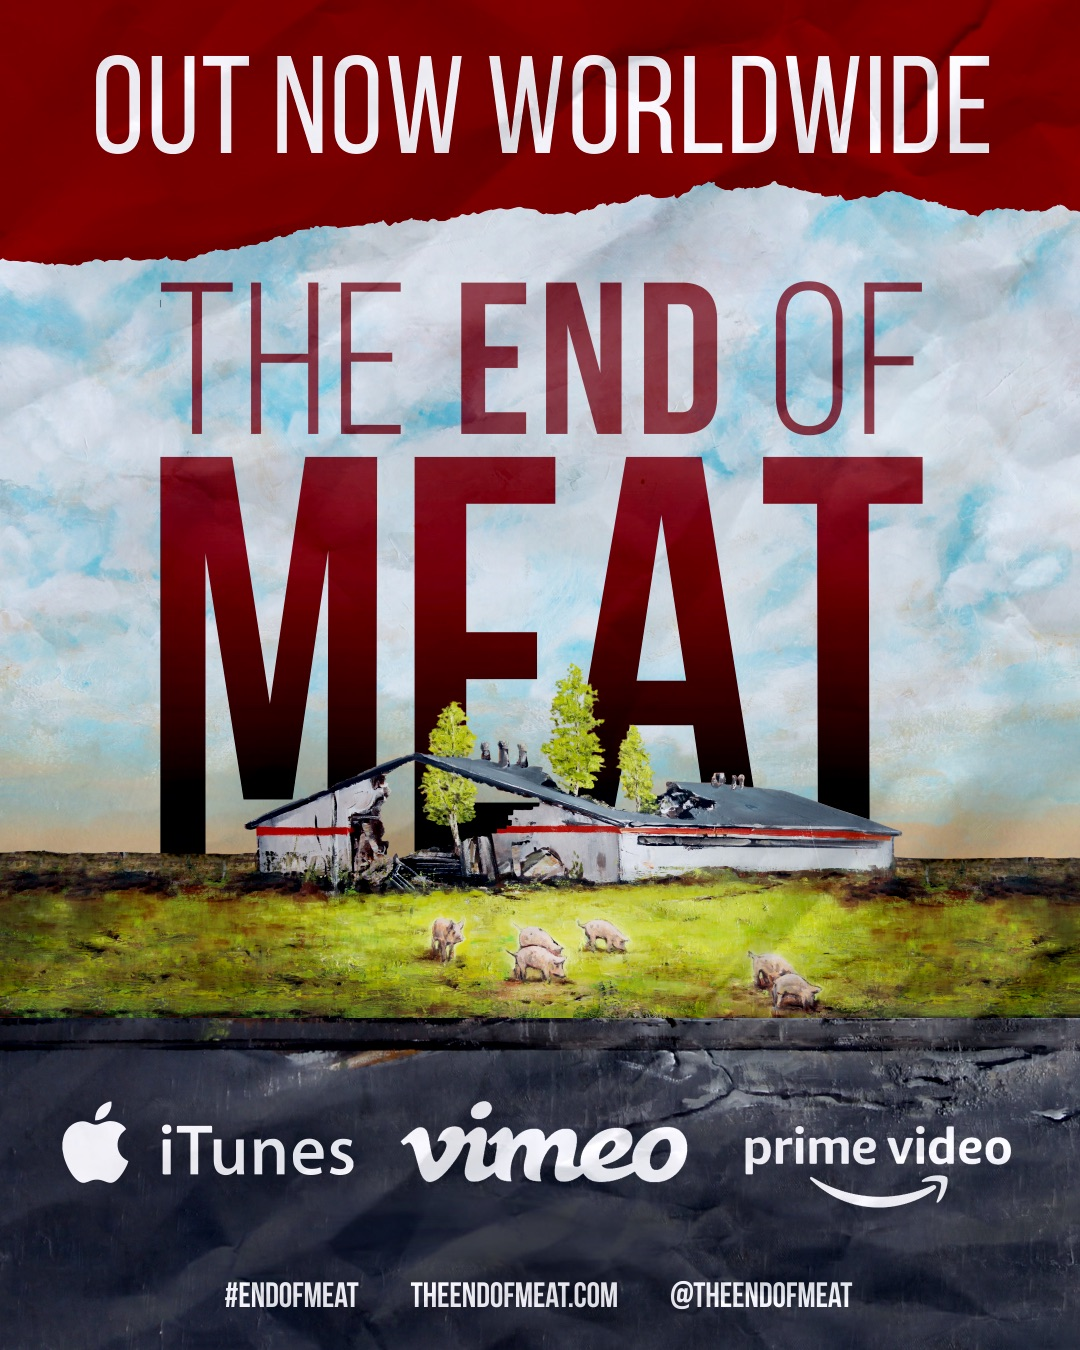 The End Of Meat - Watch it now!